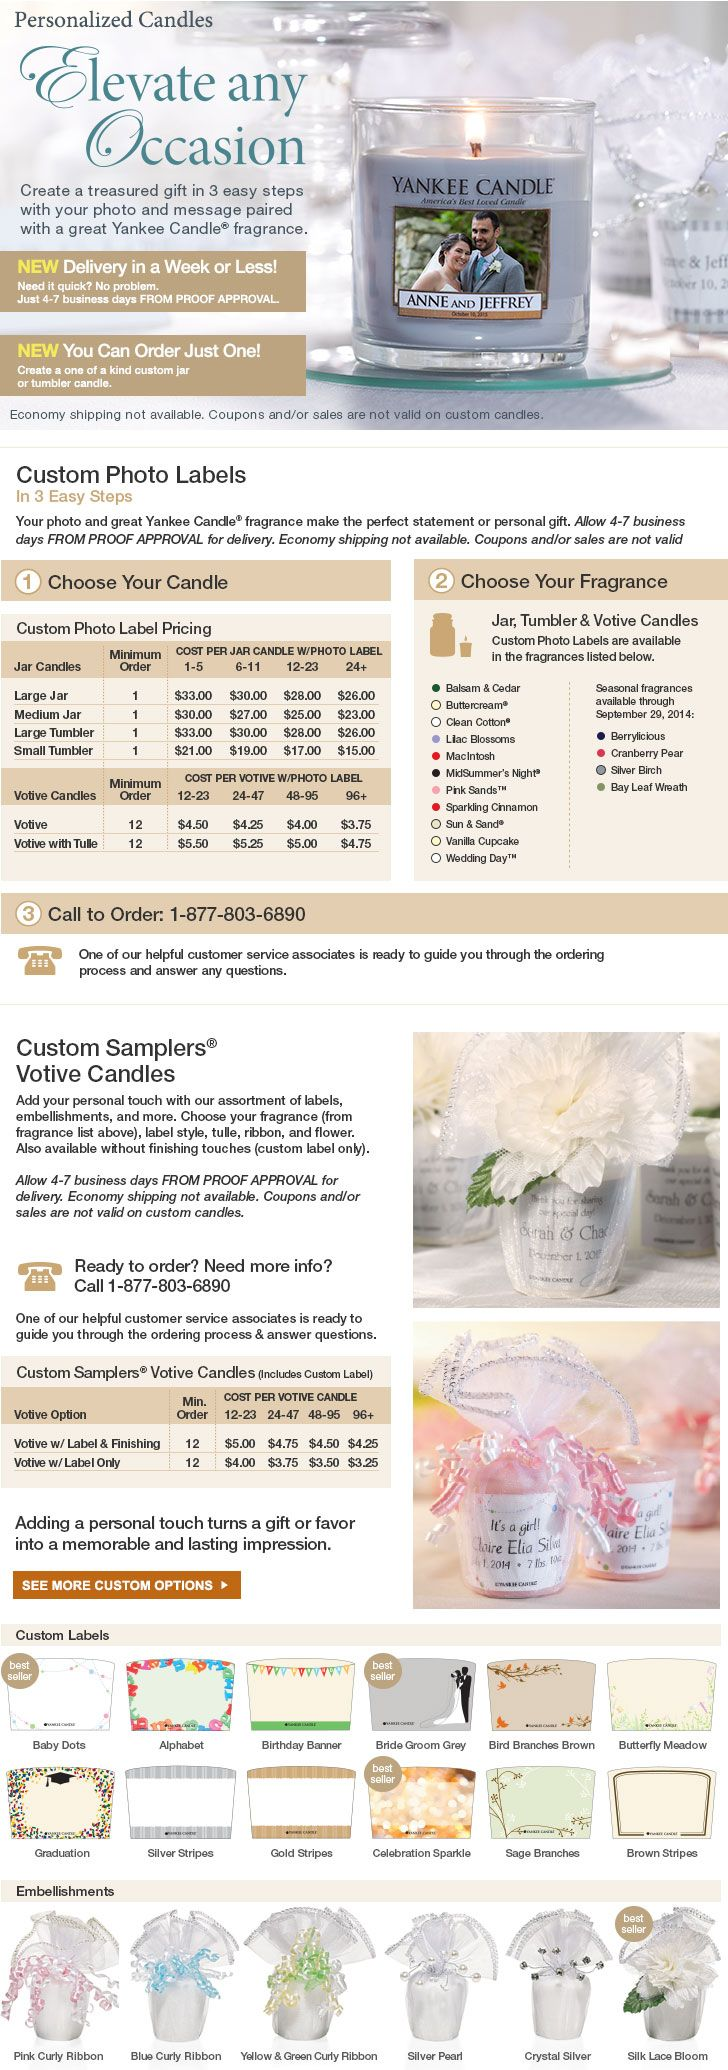 Customized Candles | Yankee Candle | Yankee Candles | Pinterest ...